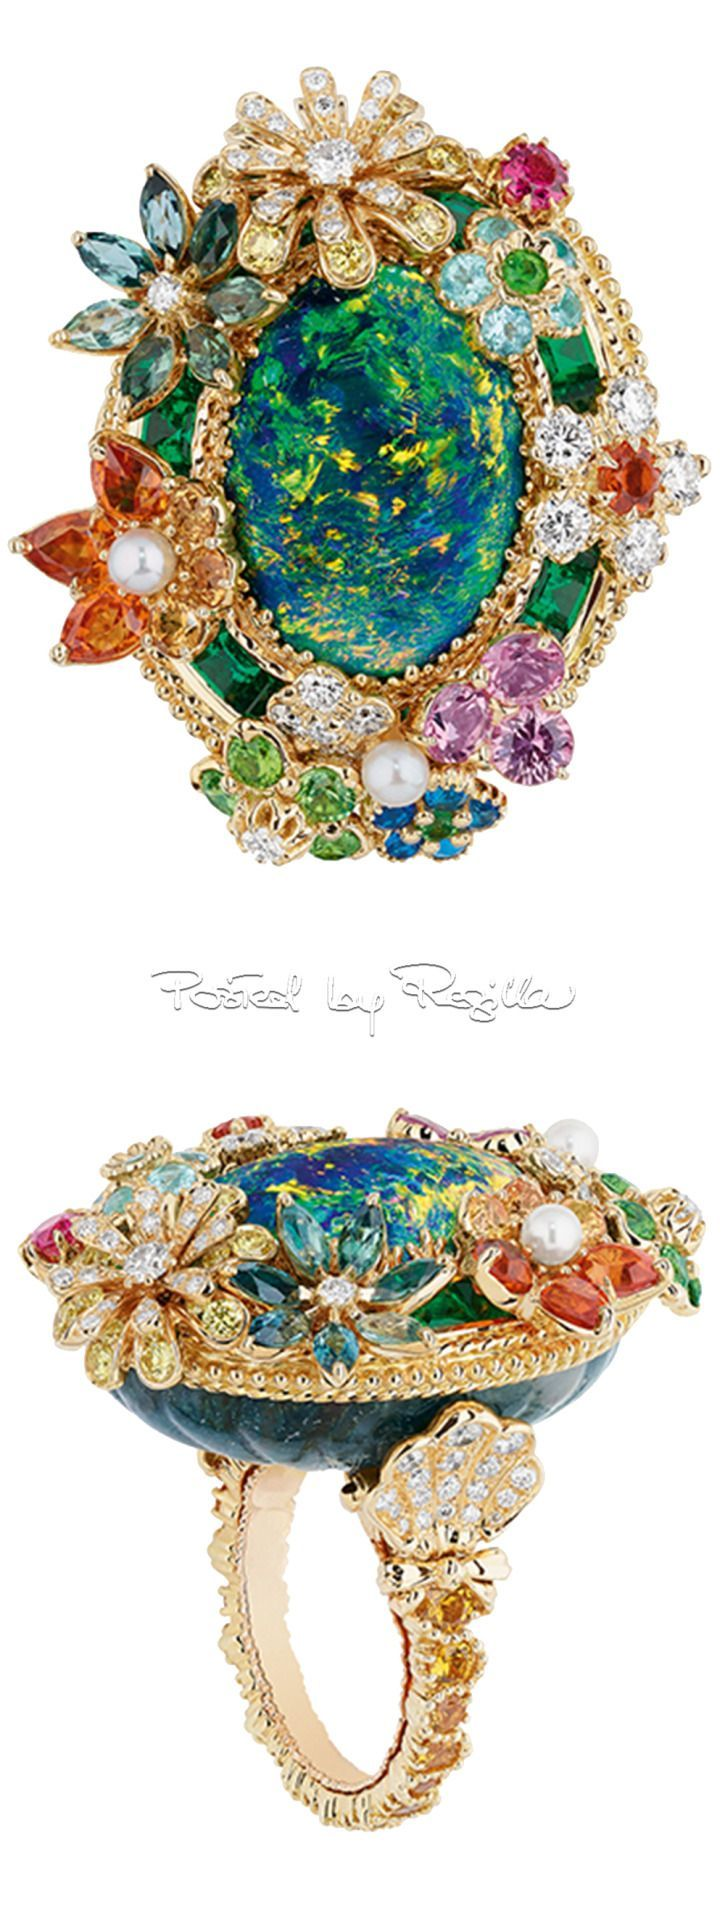 Regilla ⚜ 2017 collection of jewelry Dior